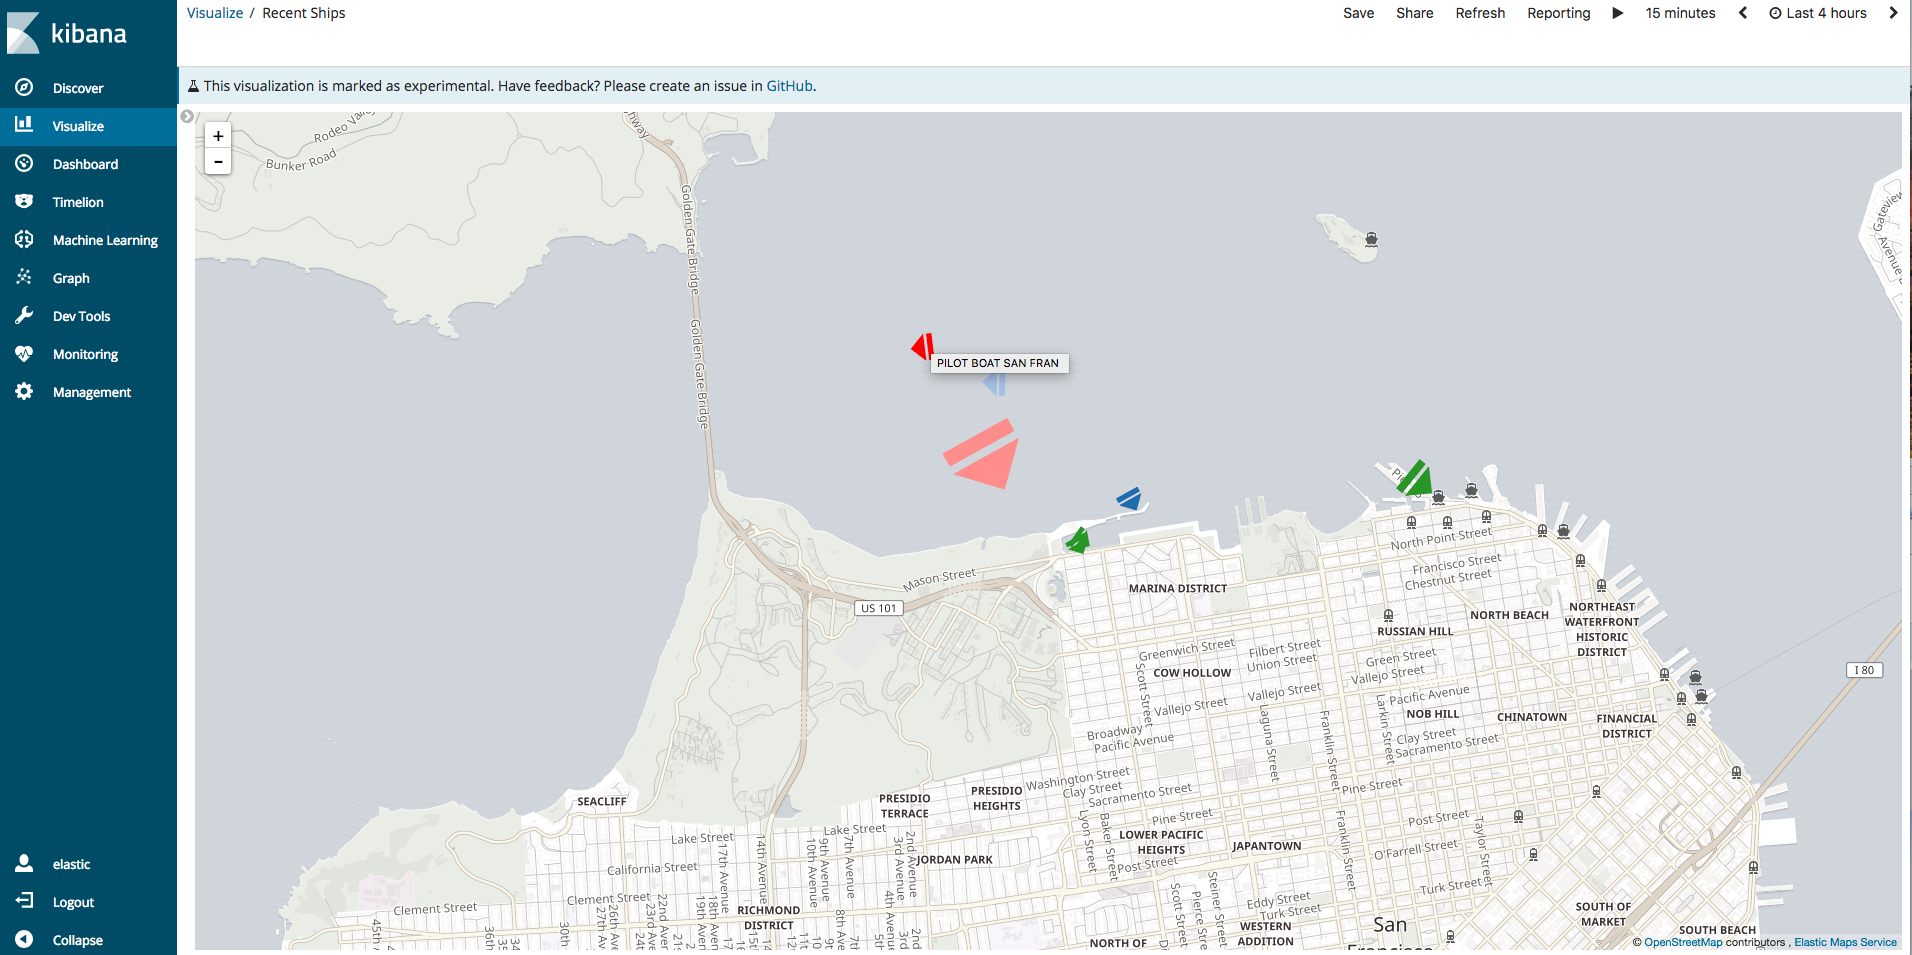 Tracking Nearby Ships with SDR, Elasticsearch, Kibana, and